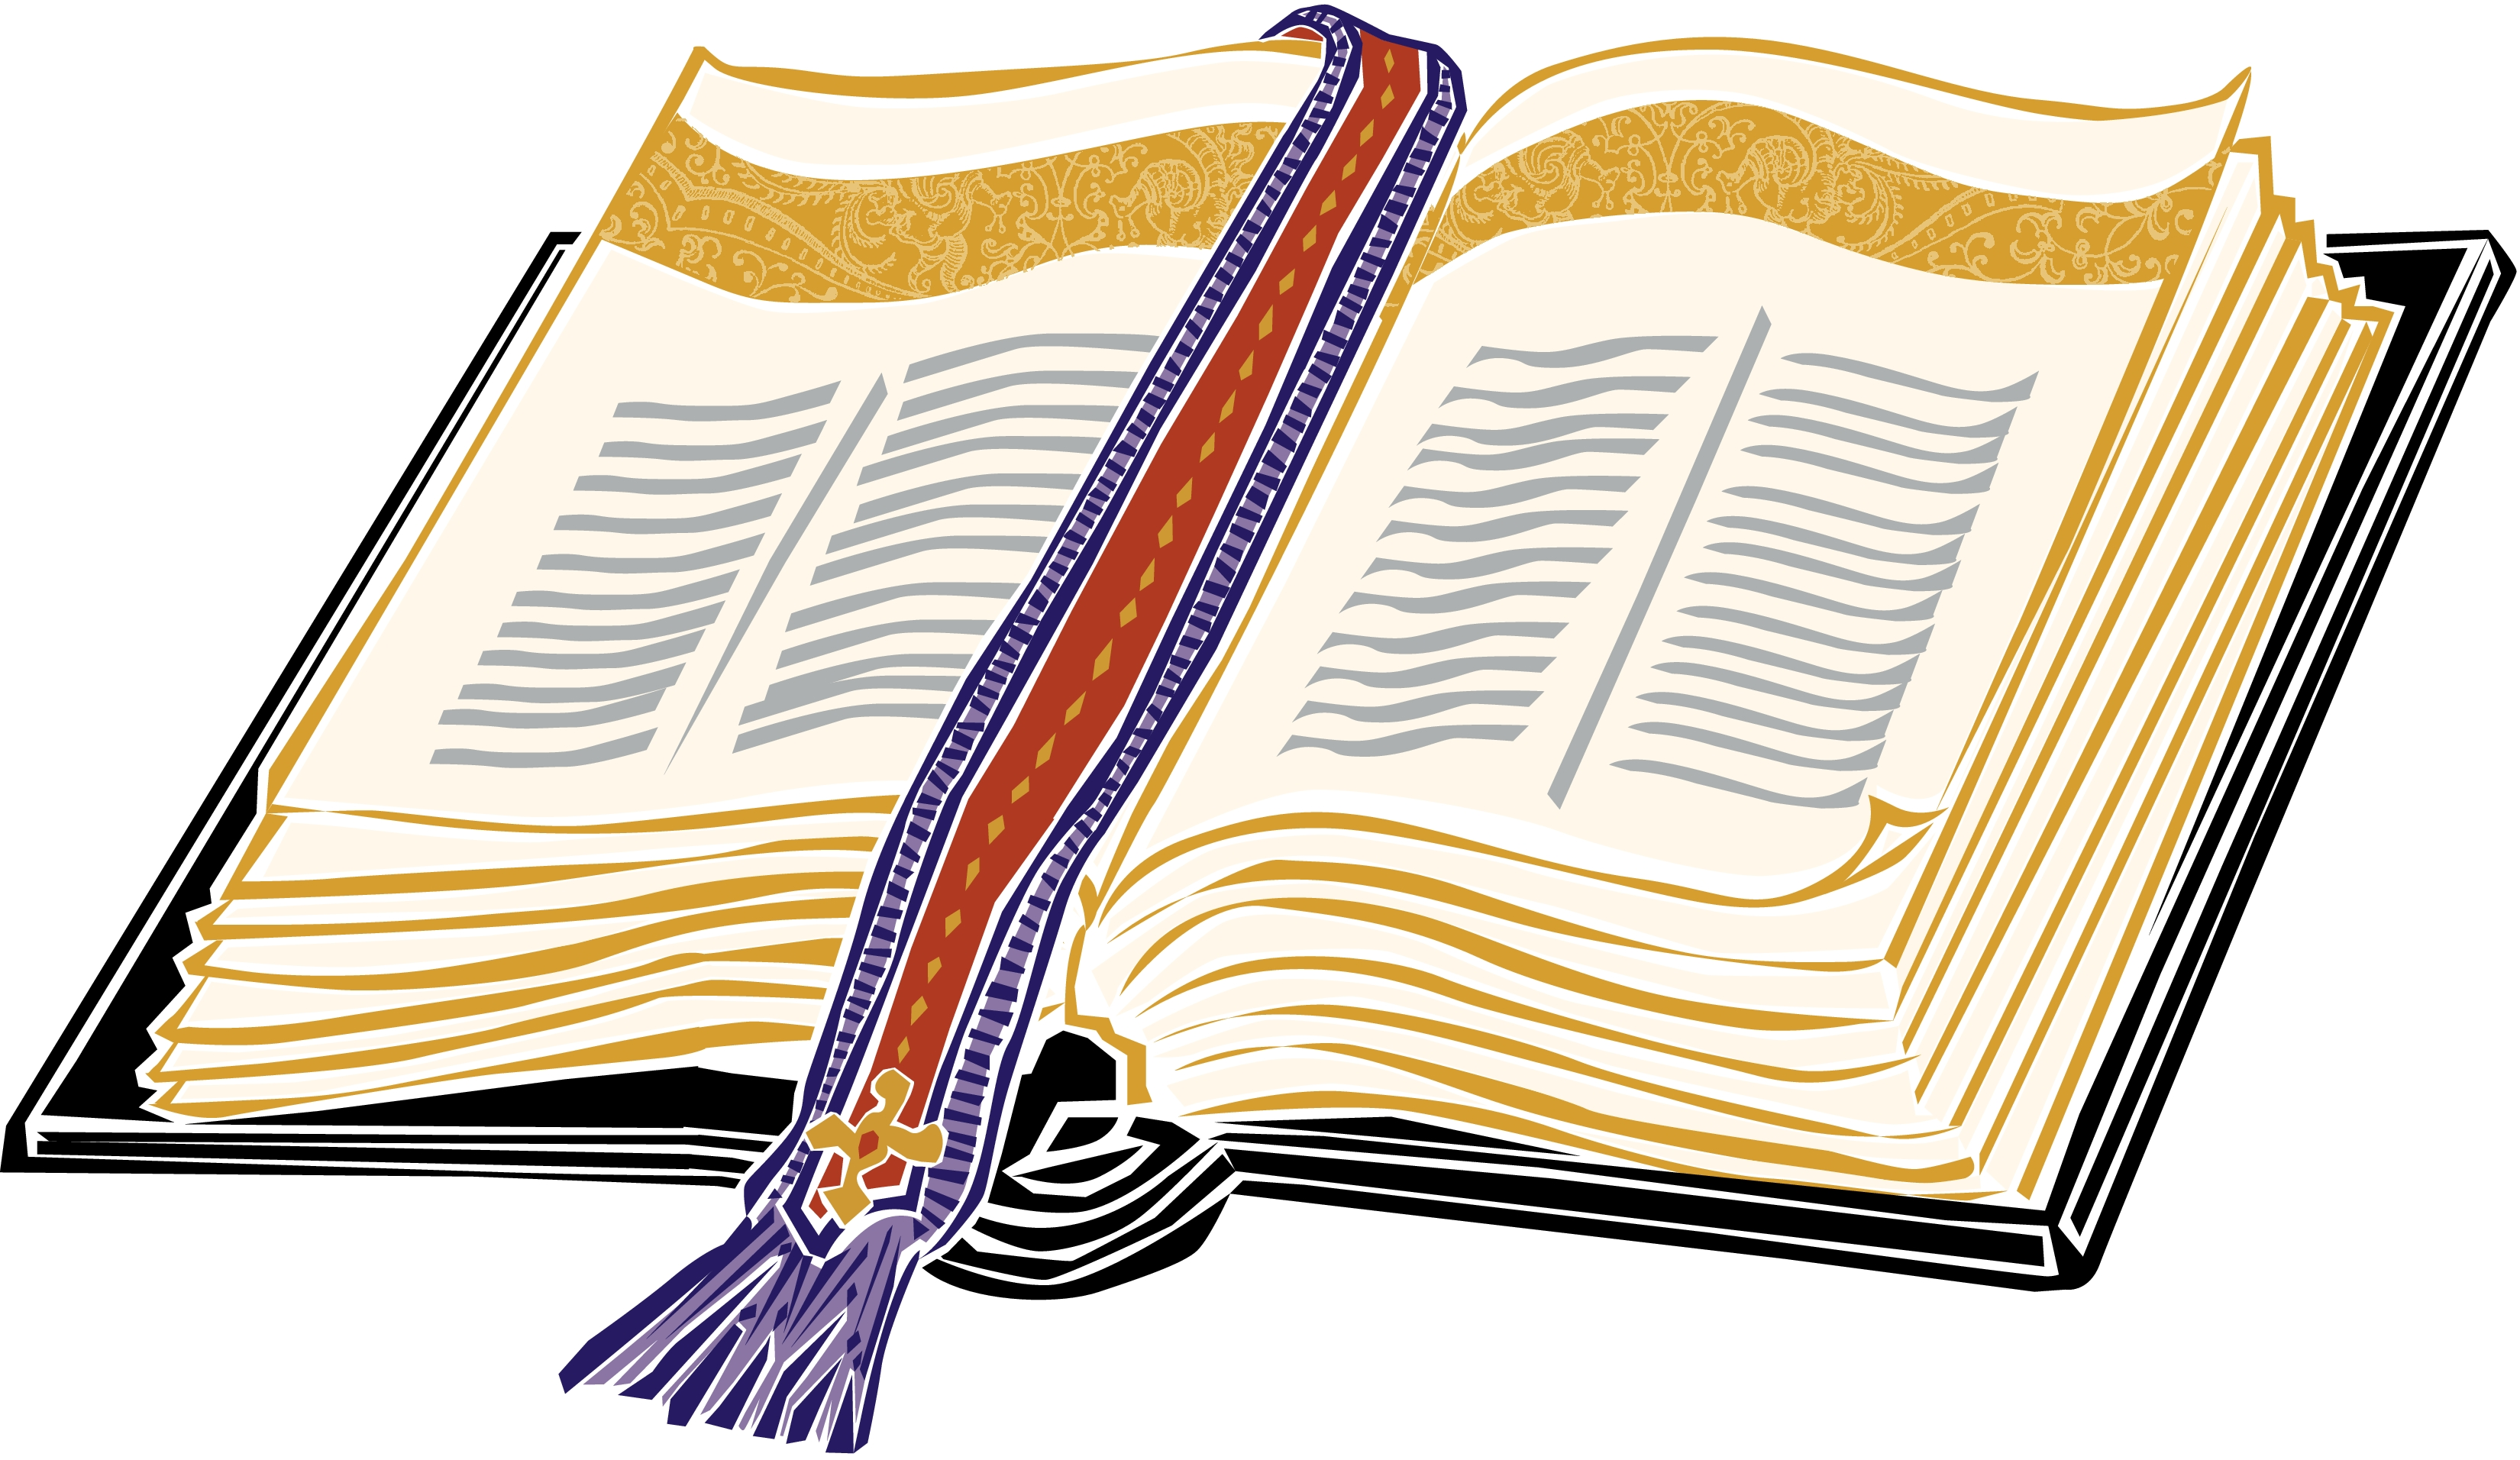 Clip Art Clipart Bible cross and bible clipart kid 39 books of the bible